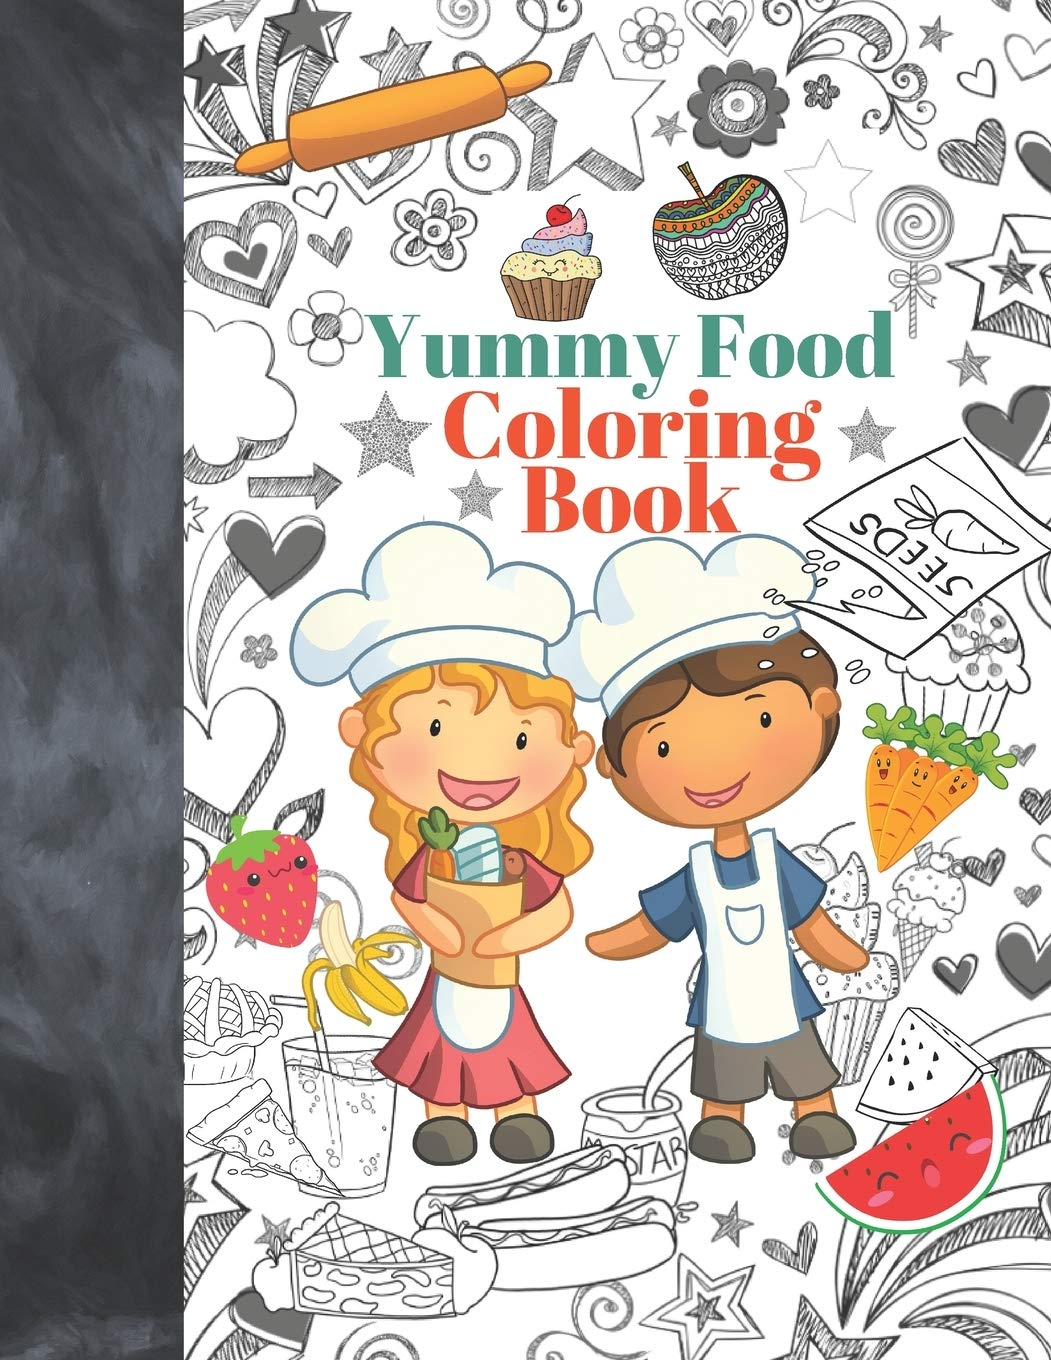 - Yummy Food Coloring Book: Kids Coloring Book Featuring Baking